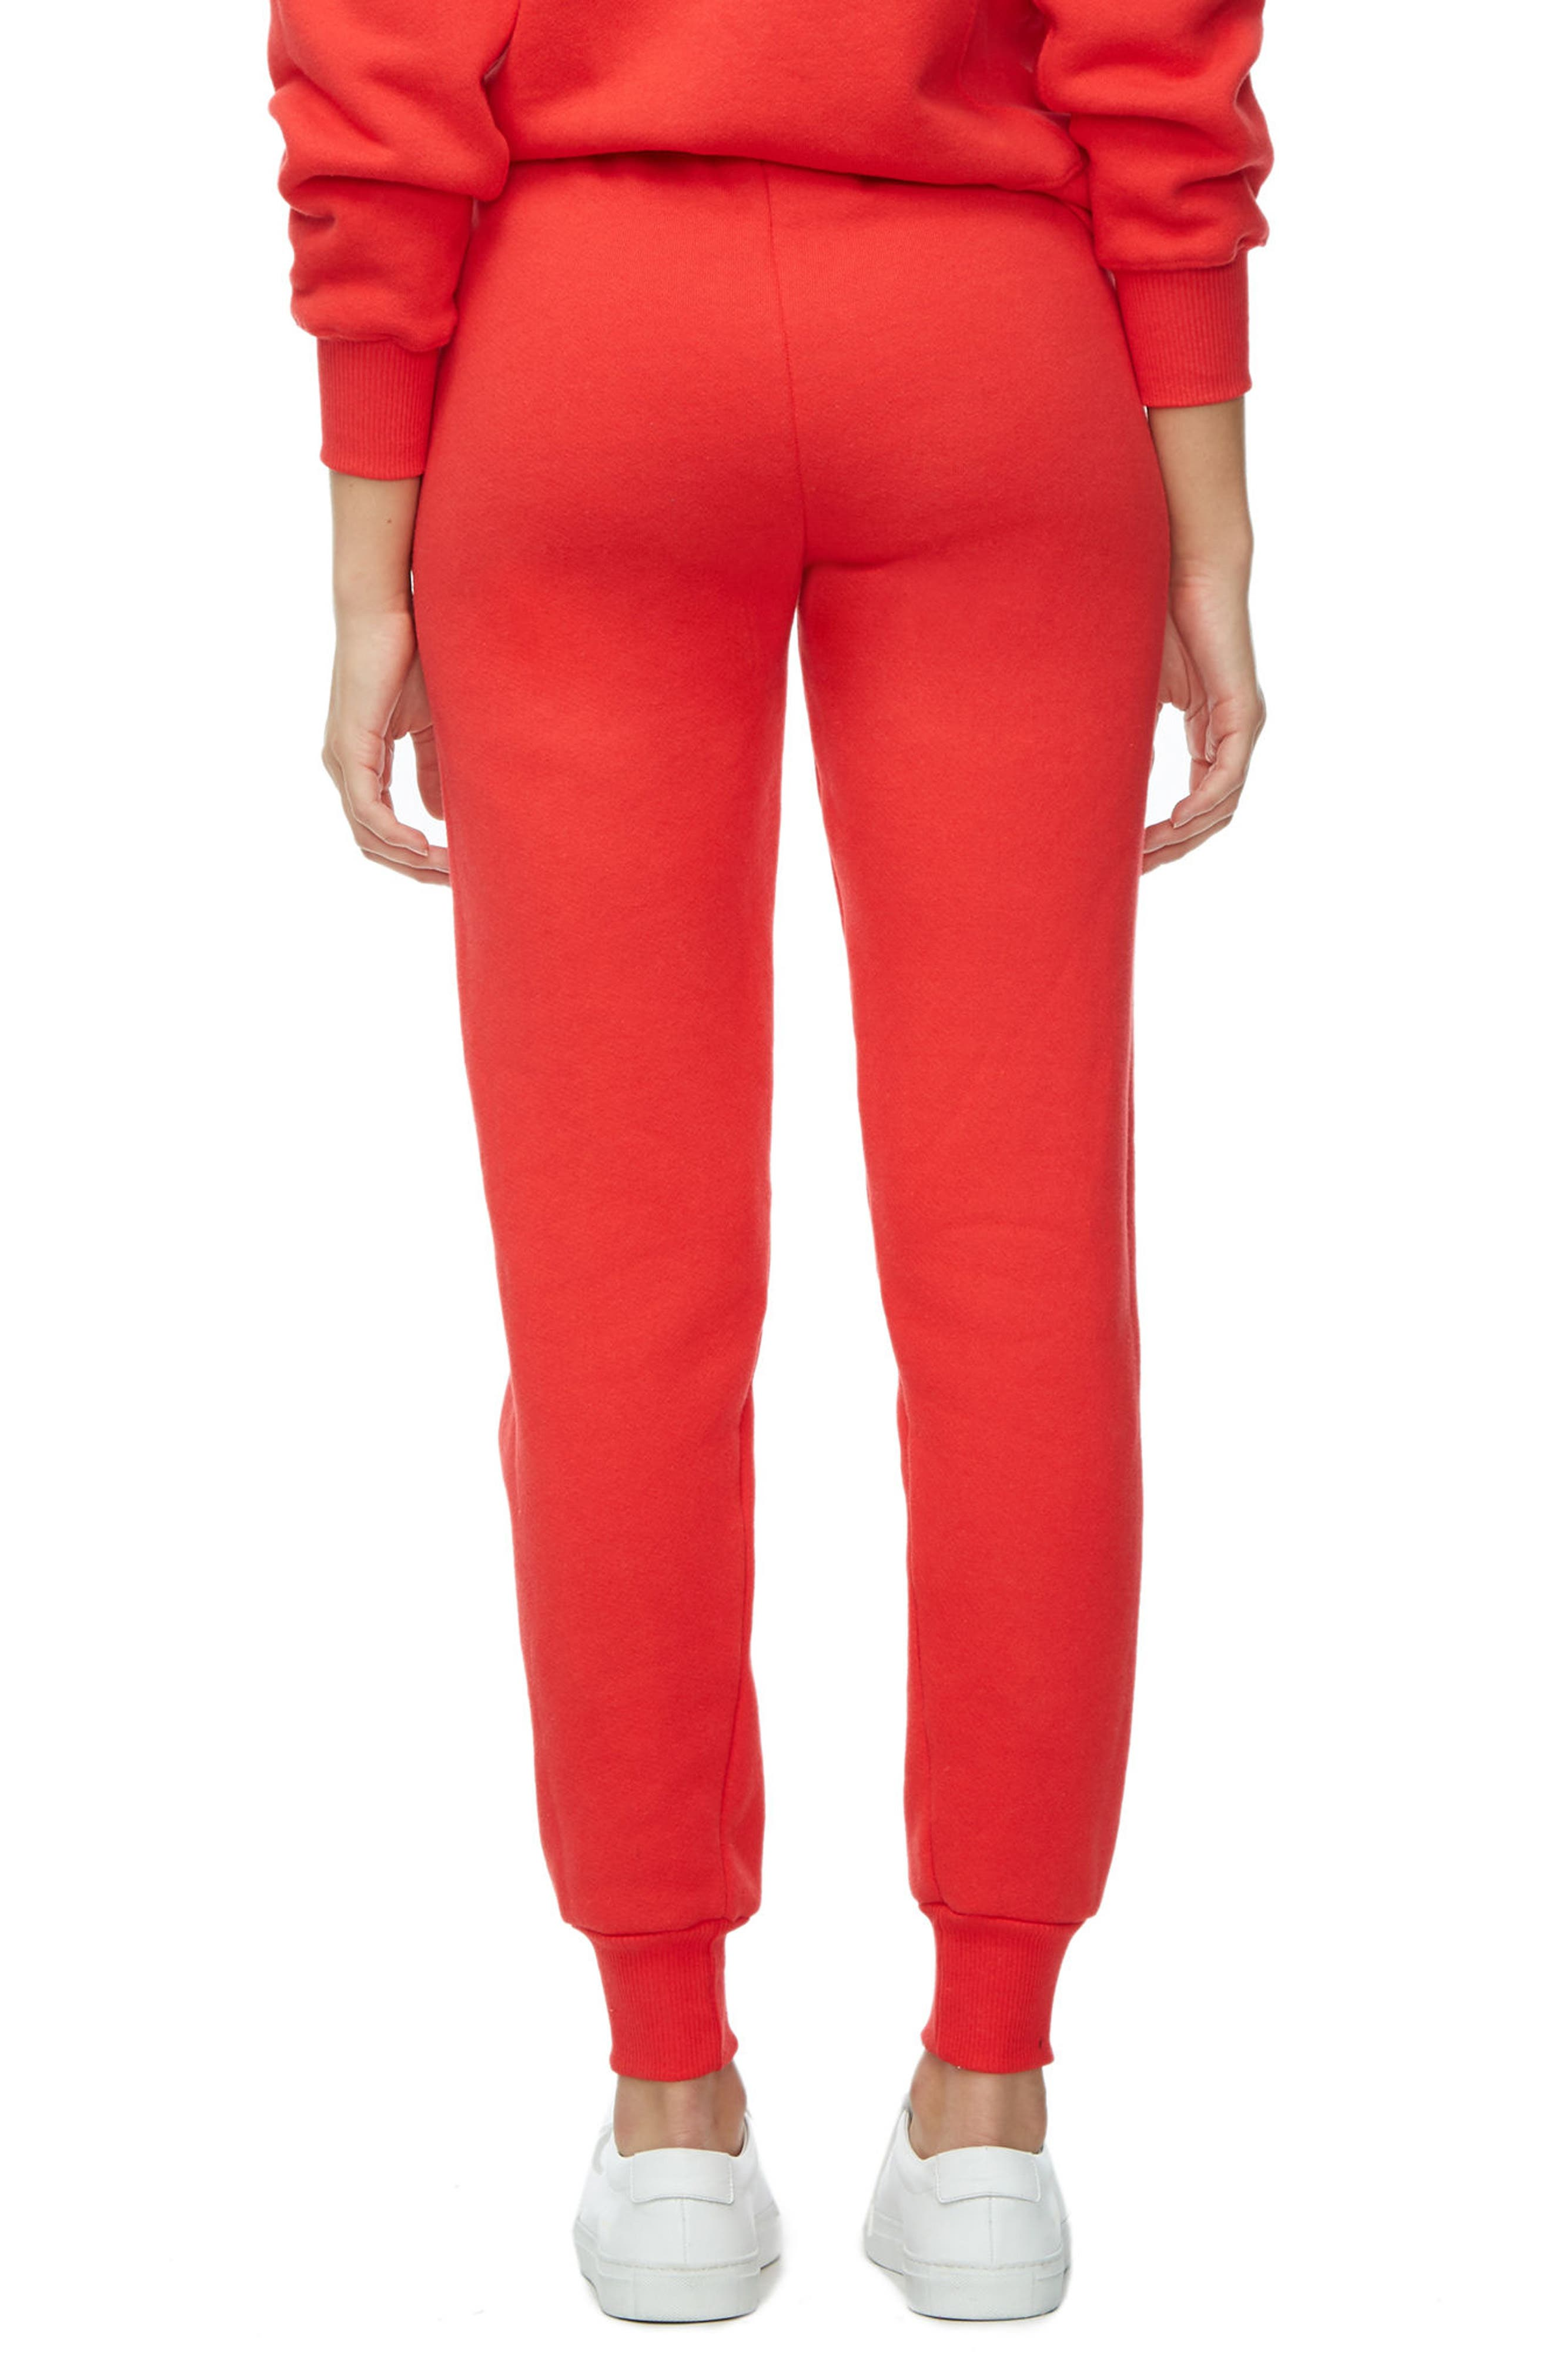 Good Sweats The Twisted Seam Pants,                             Alternate thumbnail 9, color,